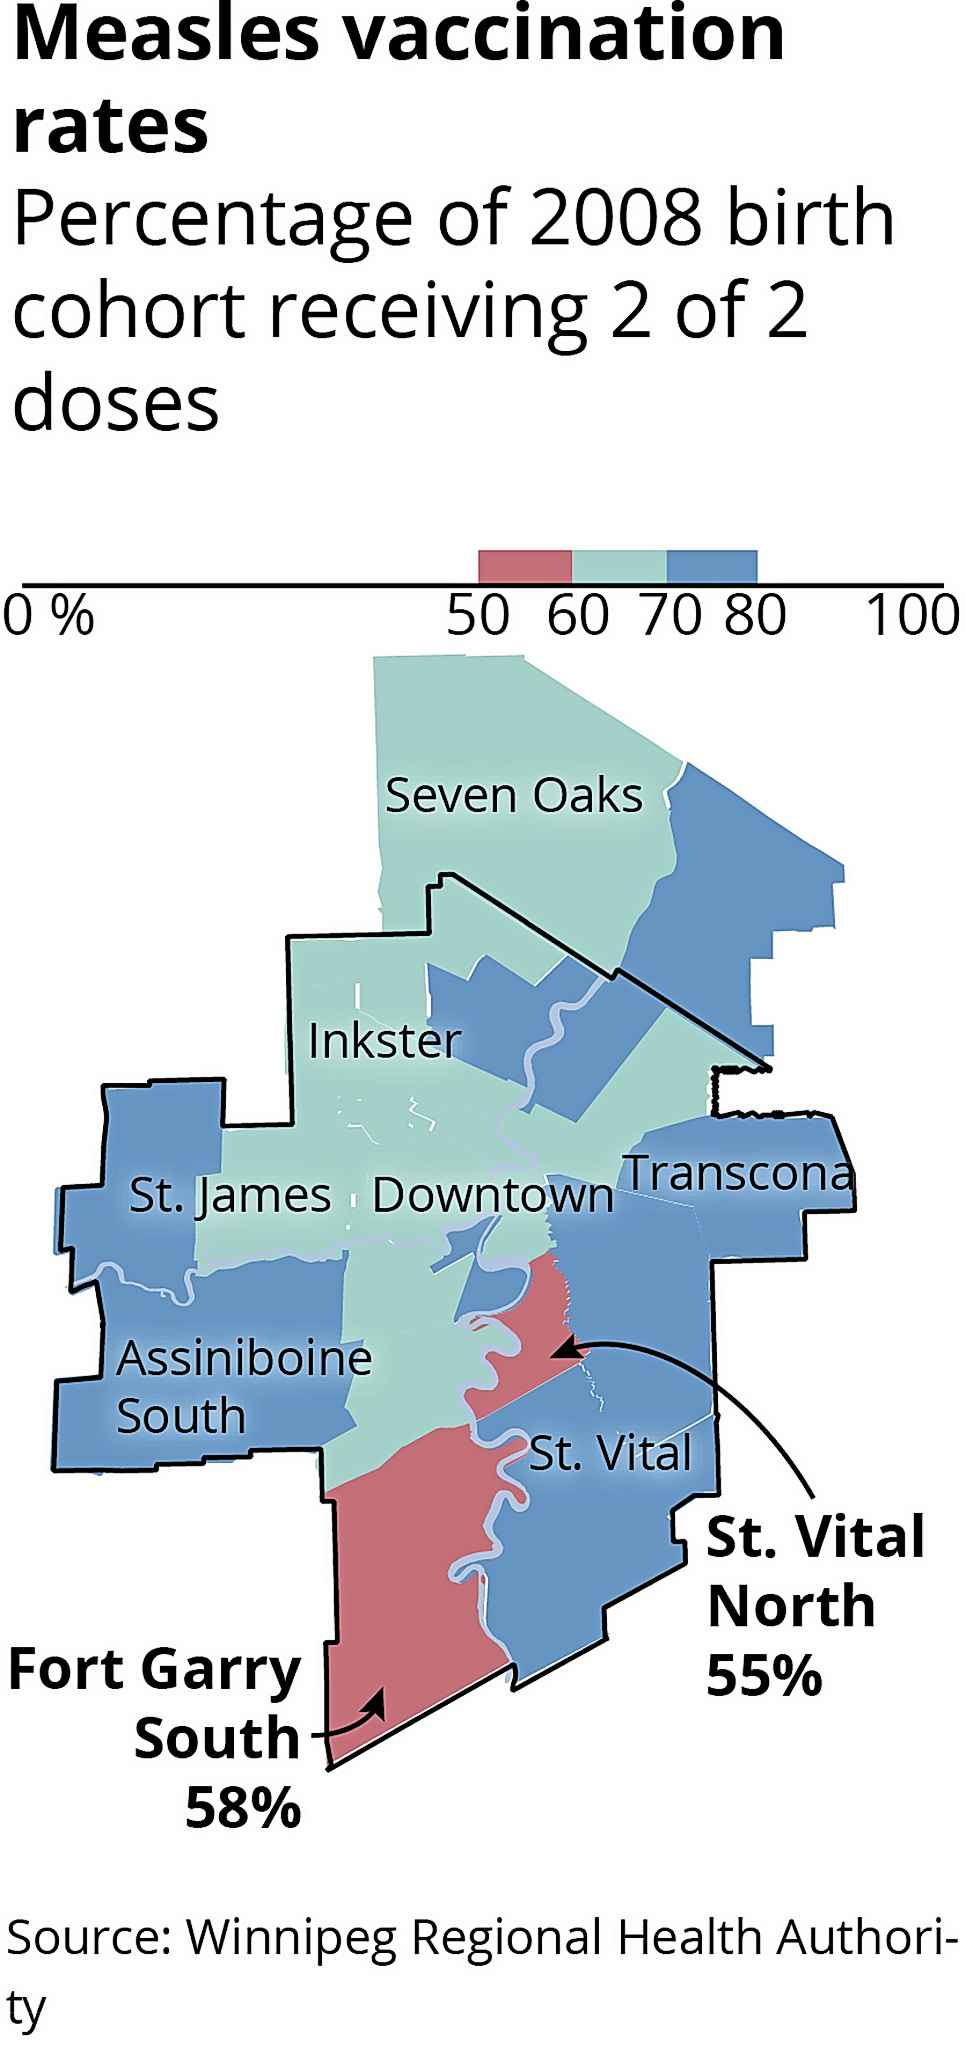 Graphic showing measles vaccination rates in Winnipeg